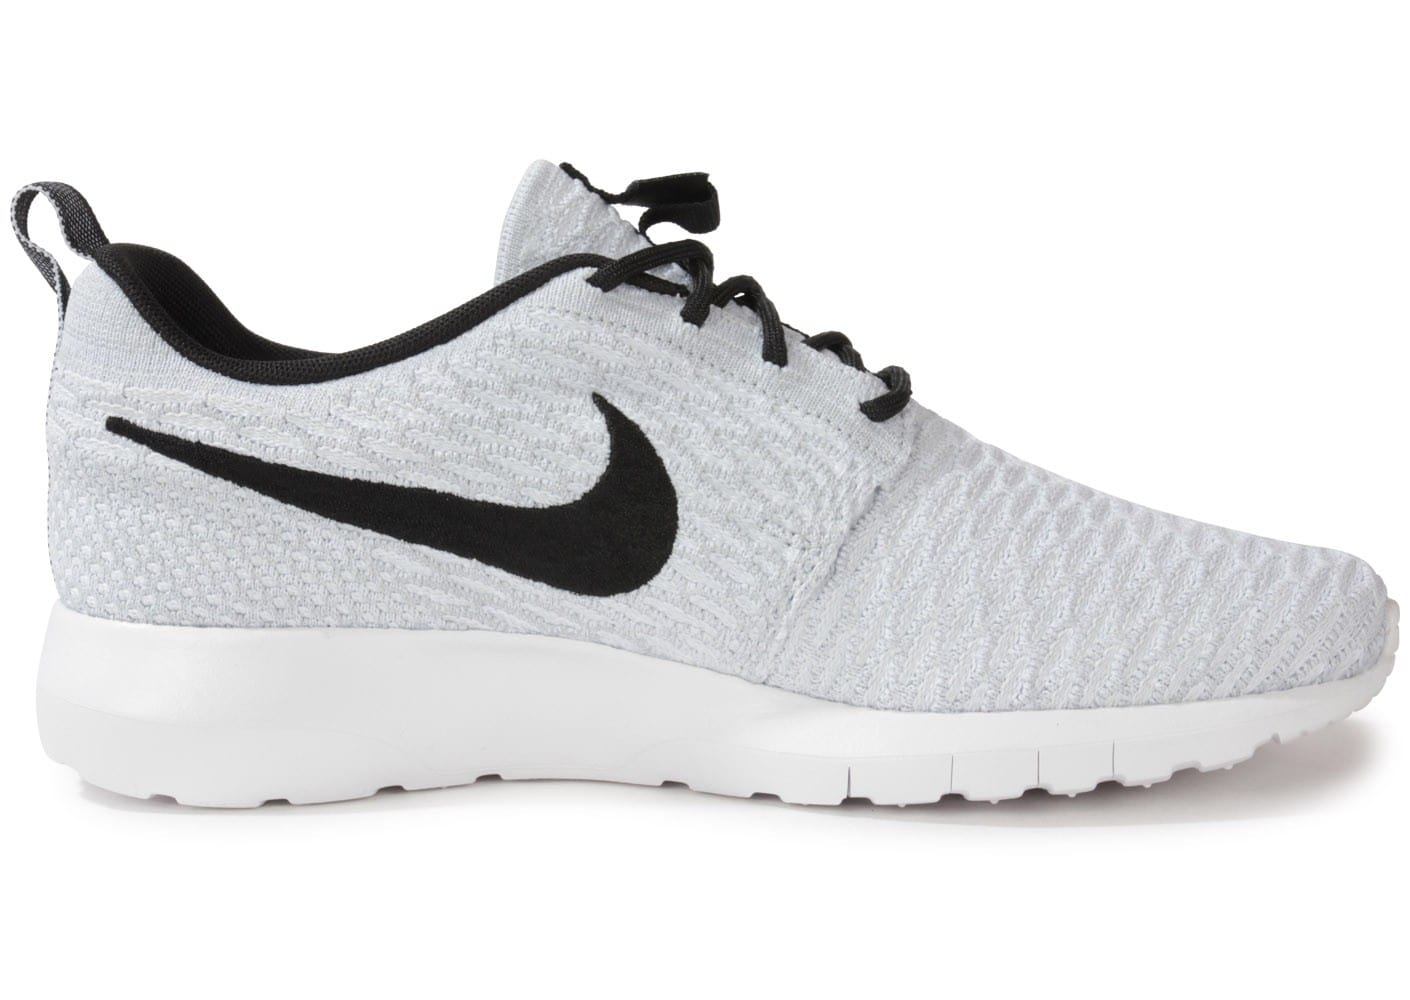 size 40 1c59a 081c7 Nike Blanche Homme Chausport Roshe Chaussures Flyknit Run Baskets rpxwrYqtU